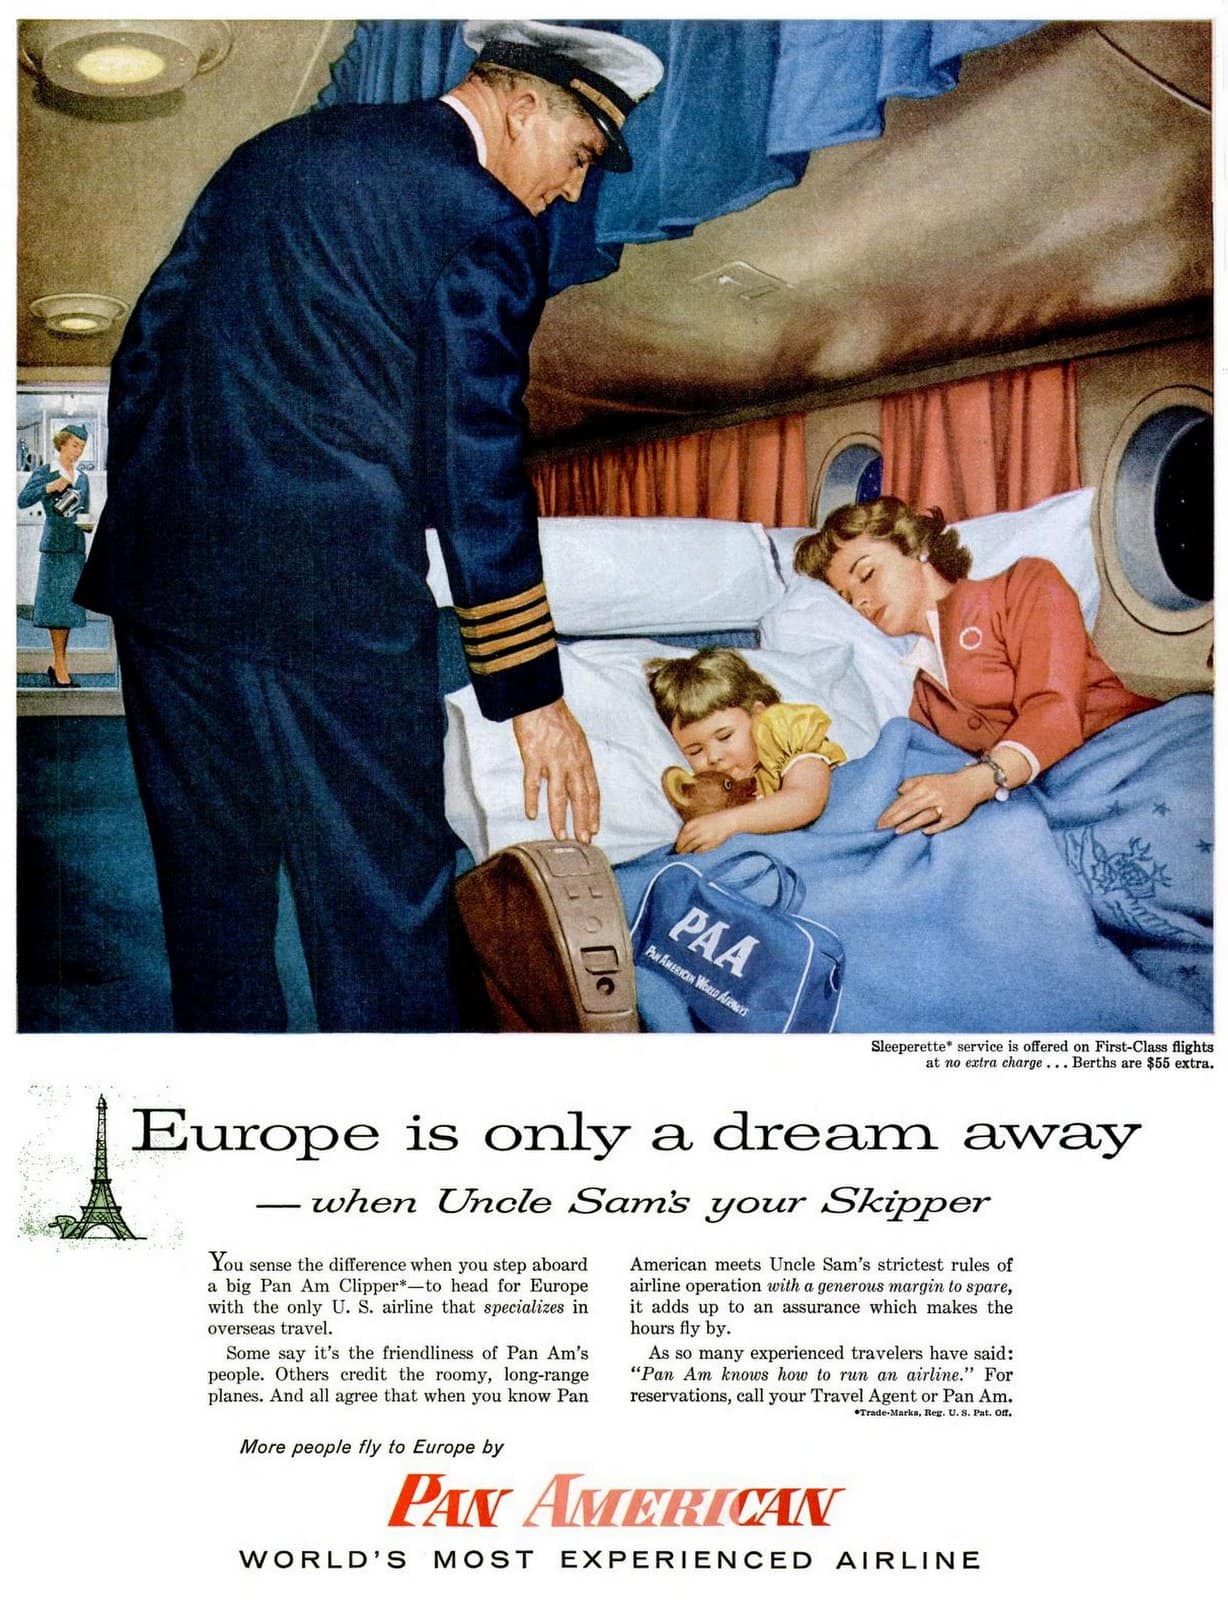 Pan Am airlines - Europe only a dream away (1956)